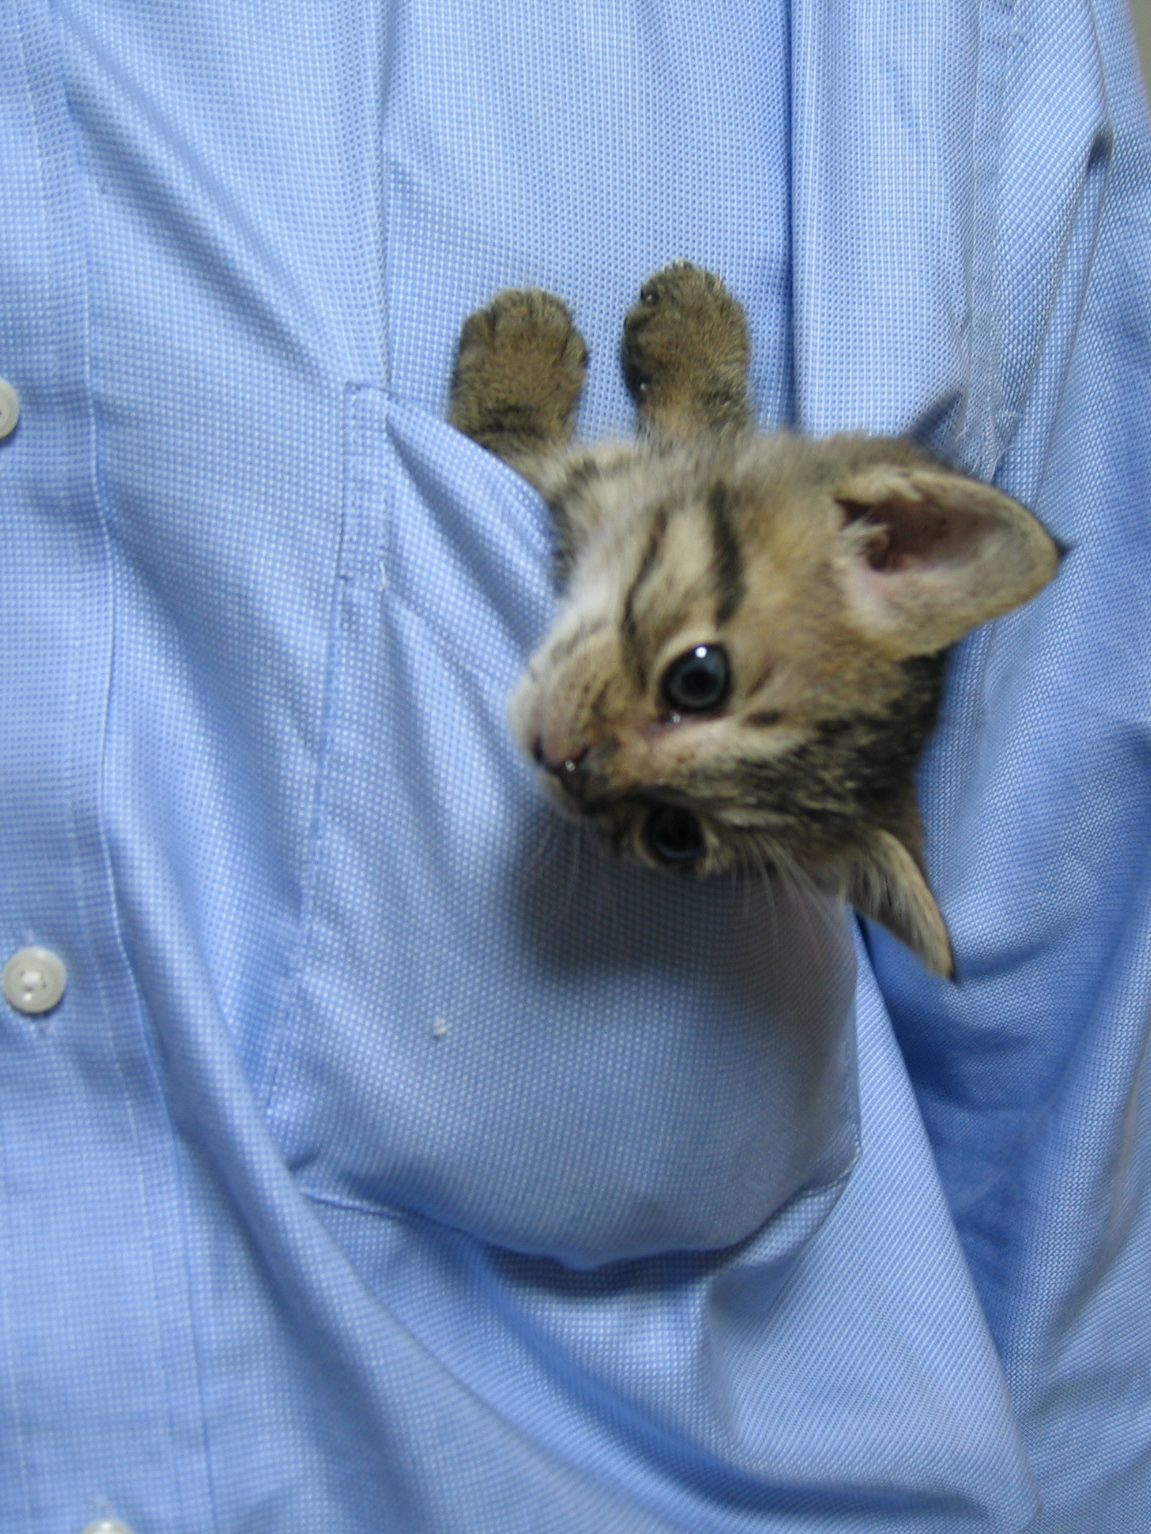 Adorable A Kitten In The Pocket Kittens Cutest Cute Animals Cats